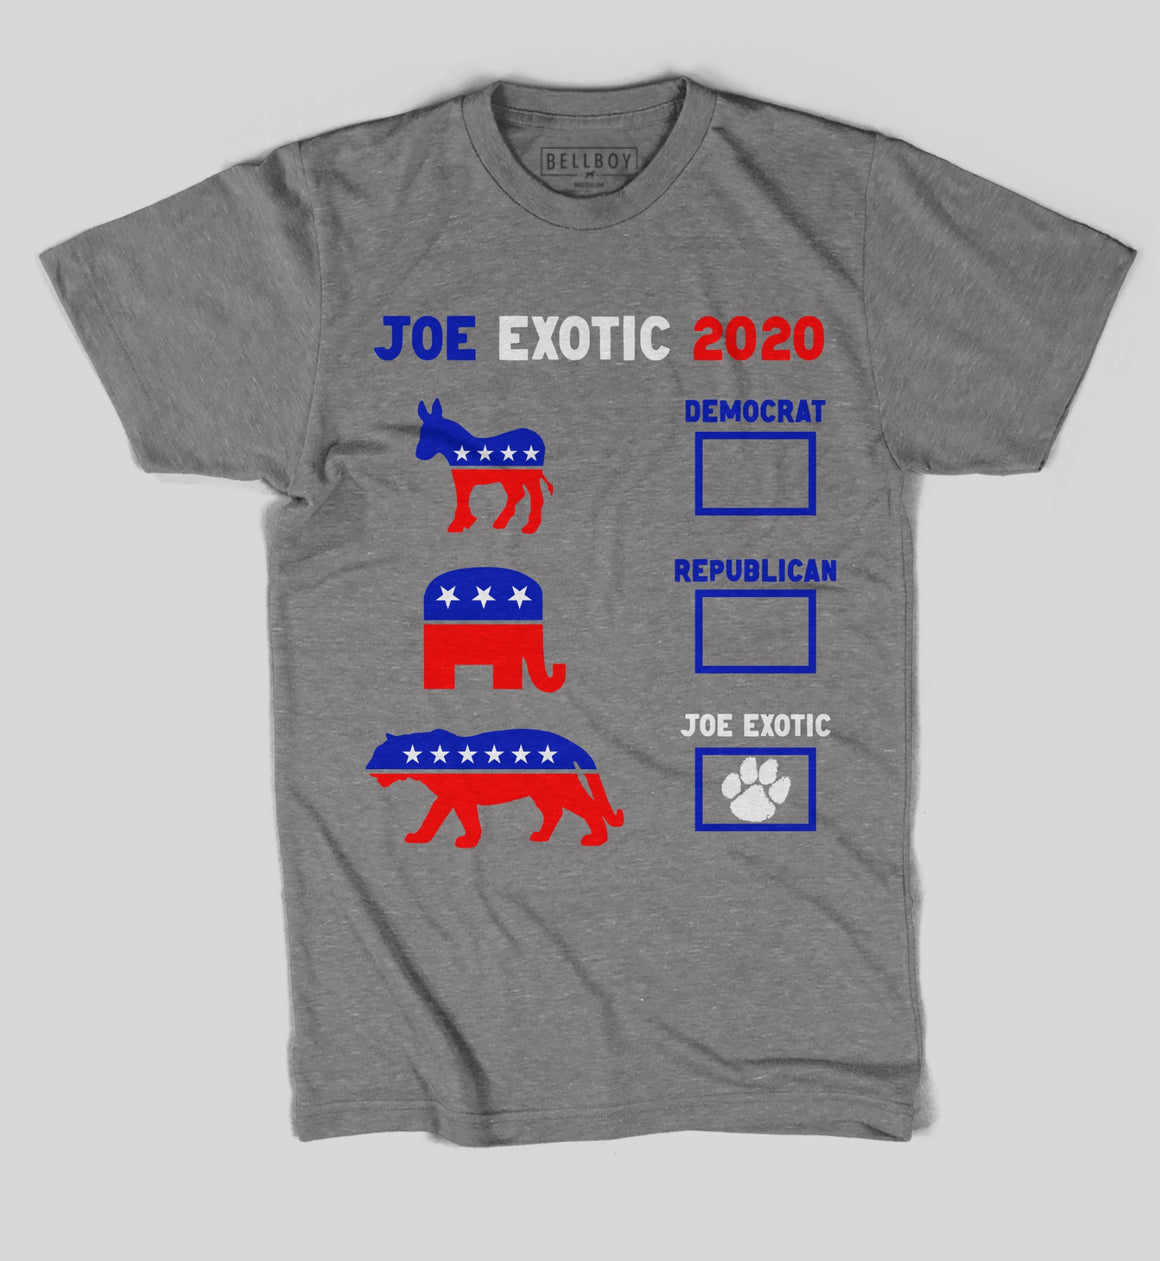 BELLBOY | VOTE FOR JOE EXOTIC T-SHIRT